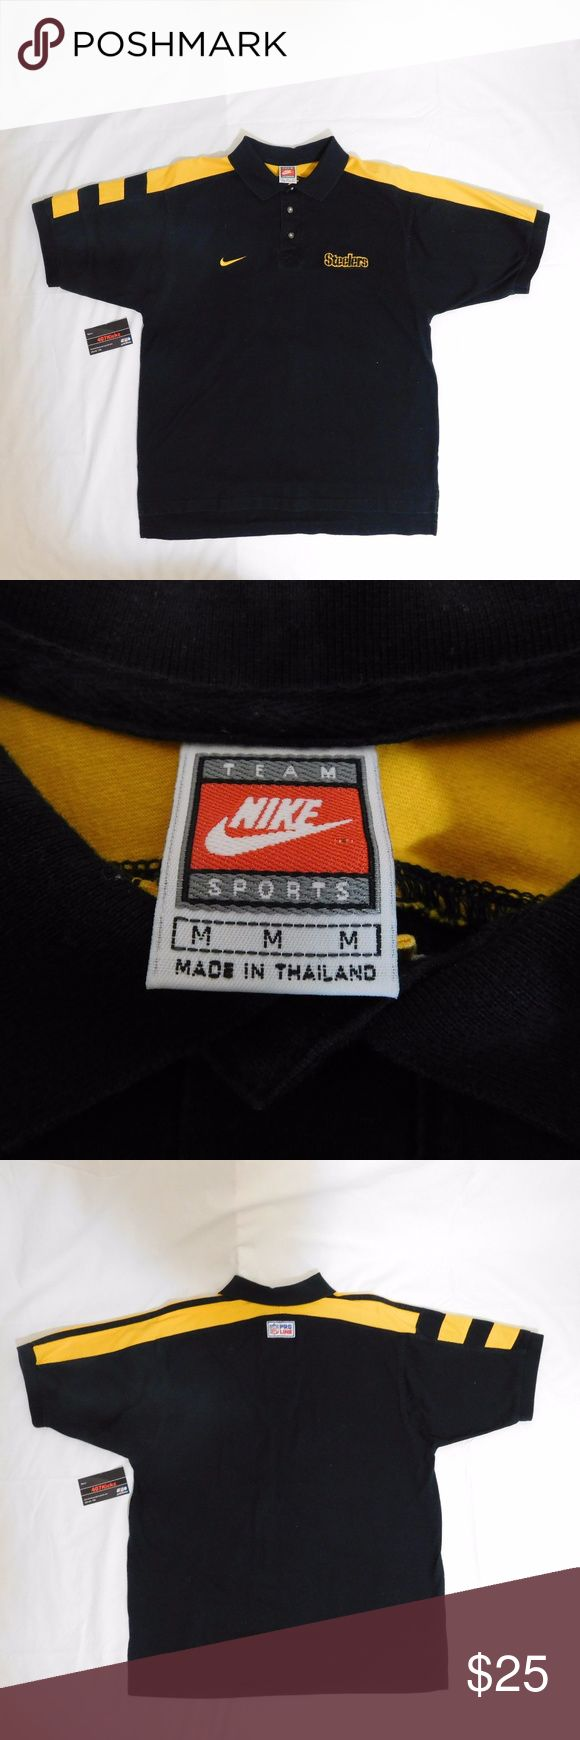 ⚫️ VTG 🏈 Nike Steelers Polo MEDIUM USED Vintage Nike Team Sports NFL Pro Line Pittsburgh Steelers Black Gold Polo Rugby Shirt | MENS size Medium | good condition, very minor fading  For Discounts Follow Me on Instagram @407vintage !  KEYWORDS/TAGS: ultra boost , Tommy Hilfiger , Polo Sport , Nautica , NMD , supreme , kith , bred , adidas , banned , french blue , stussy , Maestro , vintage , kaws , solefly , trophy room , box logo , gamma blue , retro jordan , steal , foams , foamposite…